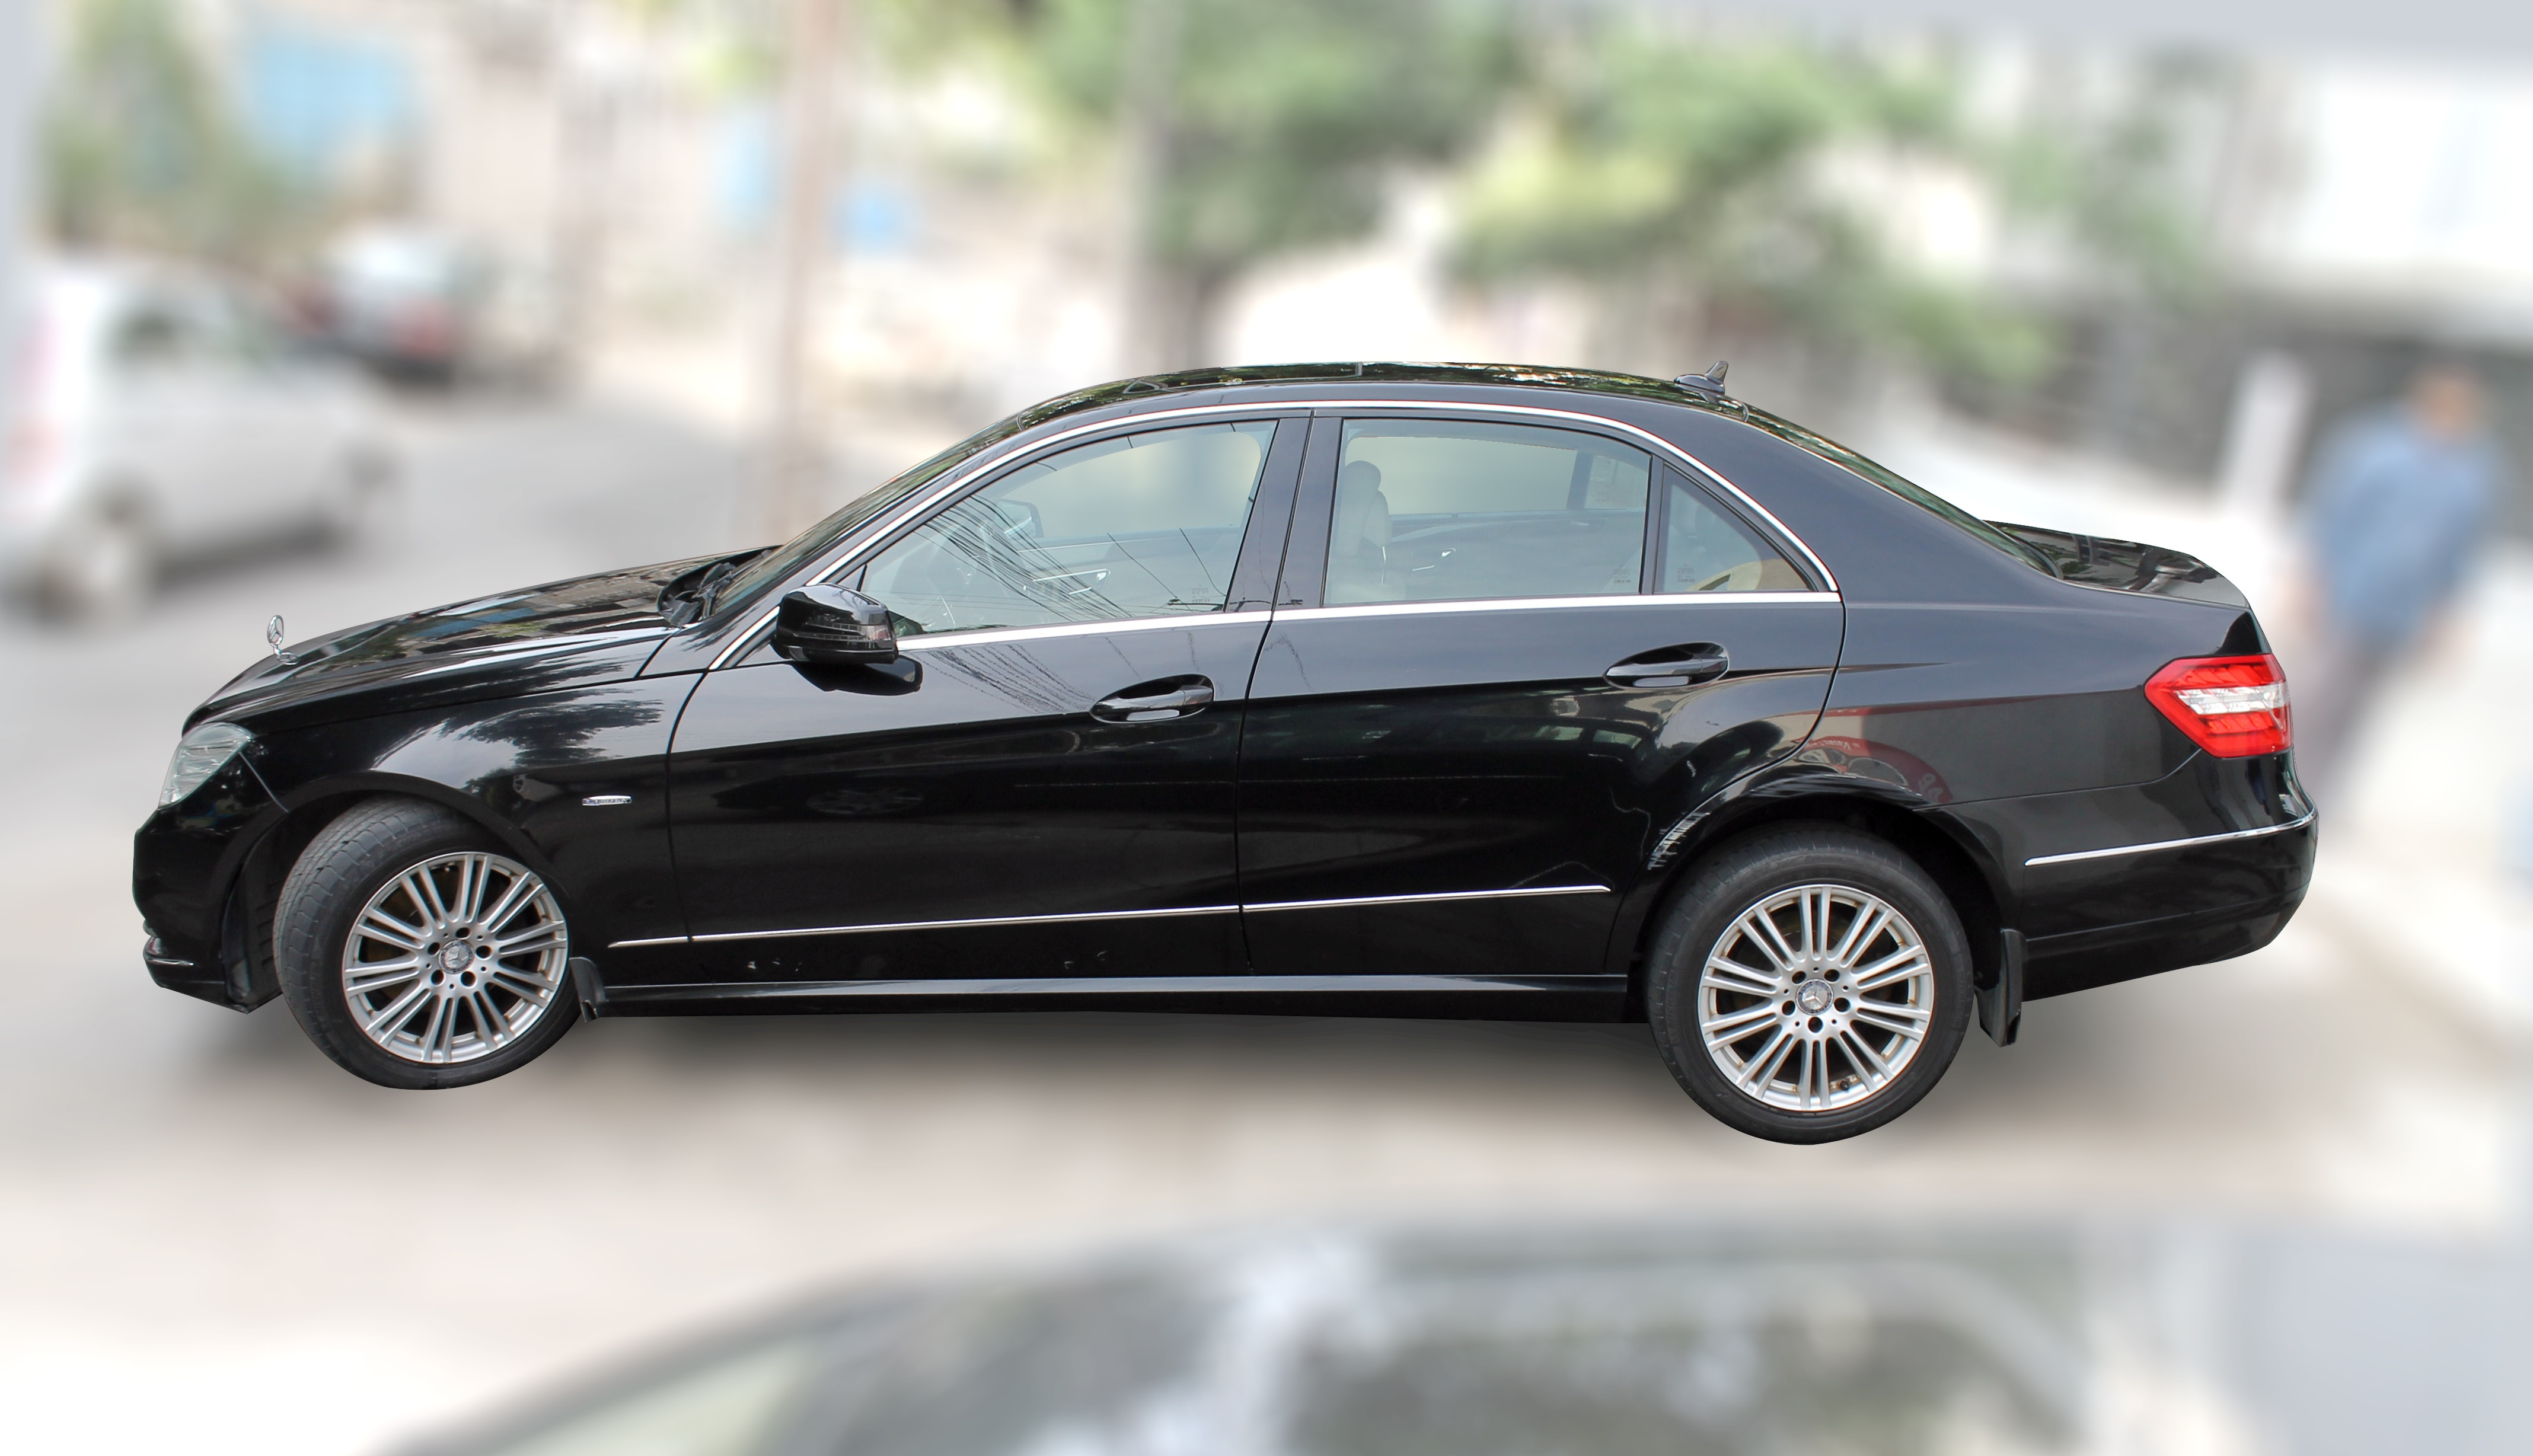 MERCEDES BENZ E250 (OBSIDIAN BLACK COLOR, DIESEL), 2010 model done only 49, 000kms in absolute mint condition... buy now and get one year servicepack from us. For further info call 7569696666. Visit us @ www.vasantmotors.in